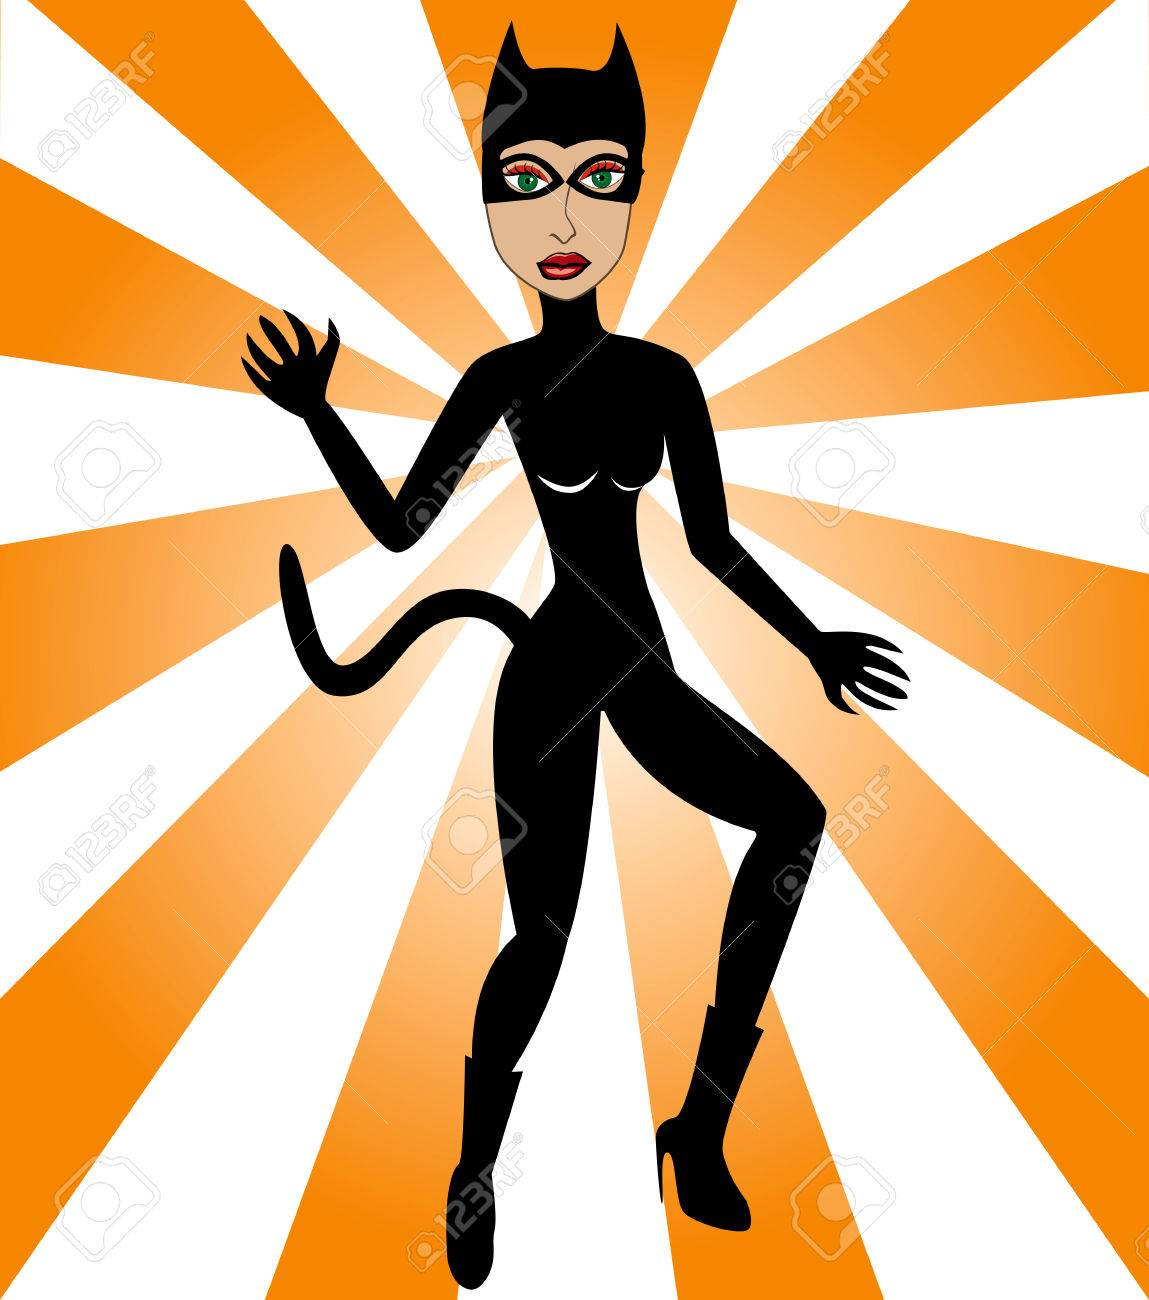 Halloween Cat Woman. Cat Woman Costume can be used for Halloween and/or party. Stock Vector - 5463829